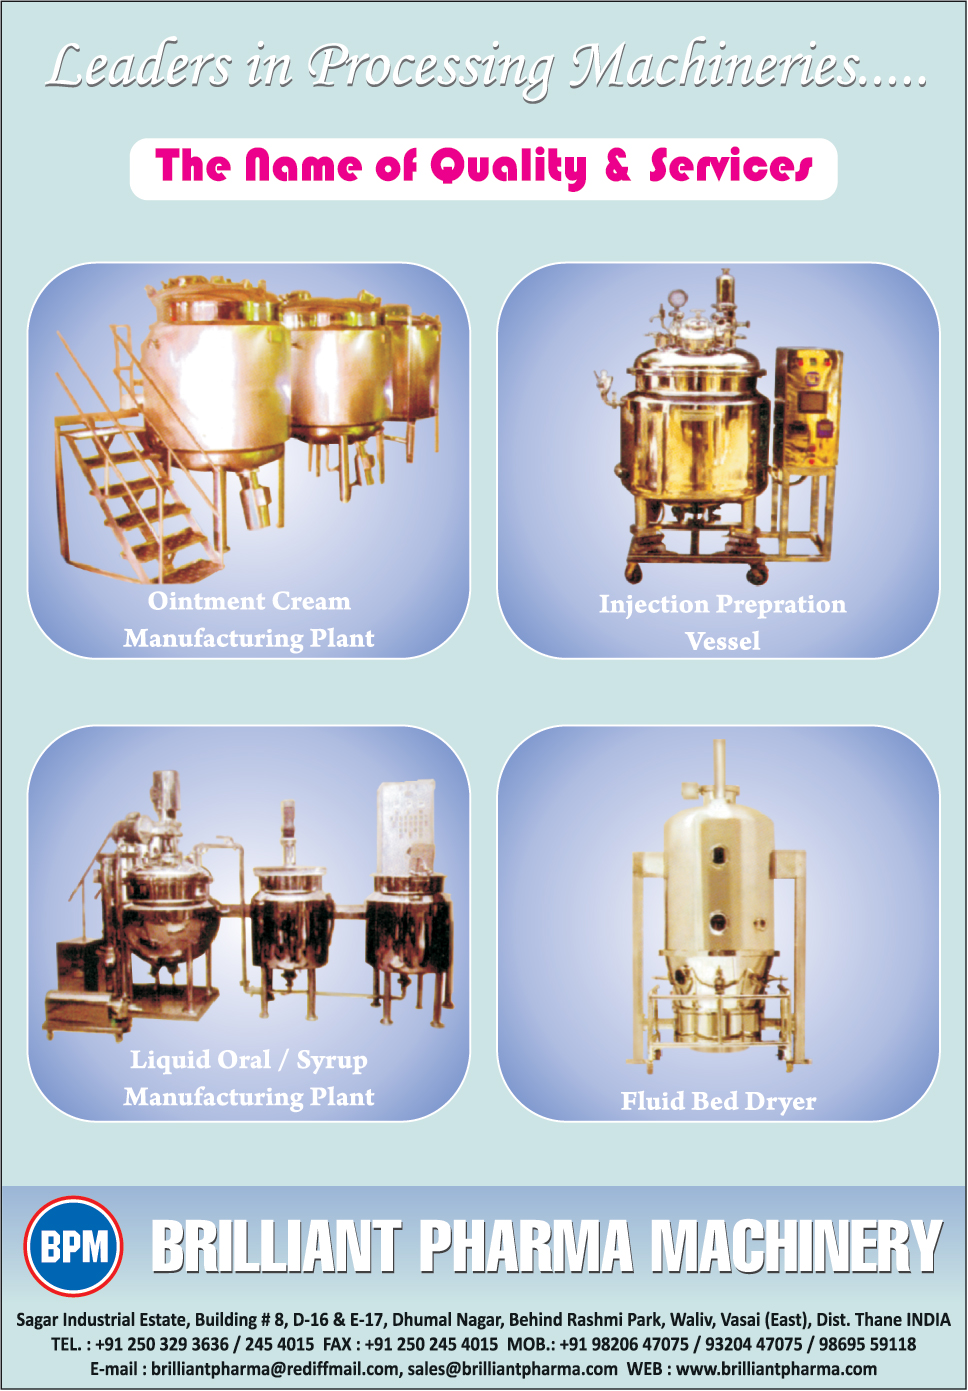 Ointment Cream Manufacturing Plants, Injection Preparation Vessels, Liquid Oral Manufacturing Plants, Liquid Syrup Manufacturing Plants, Fluid Bed Dryers